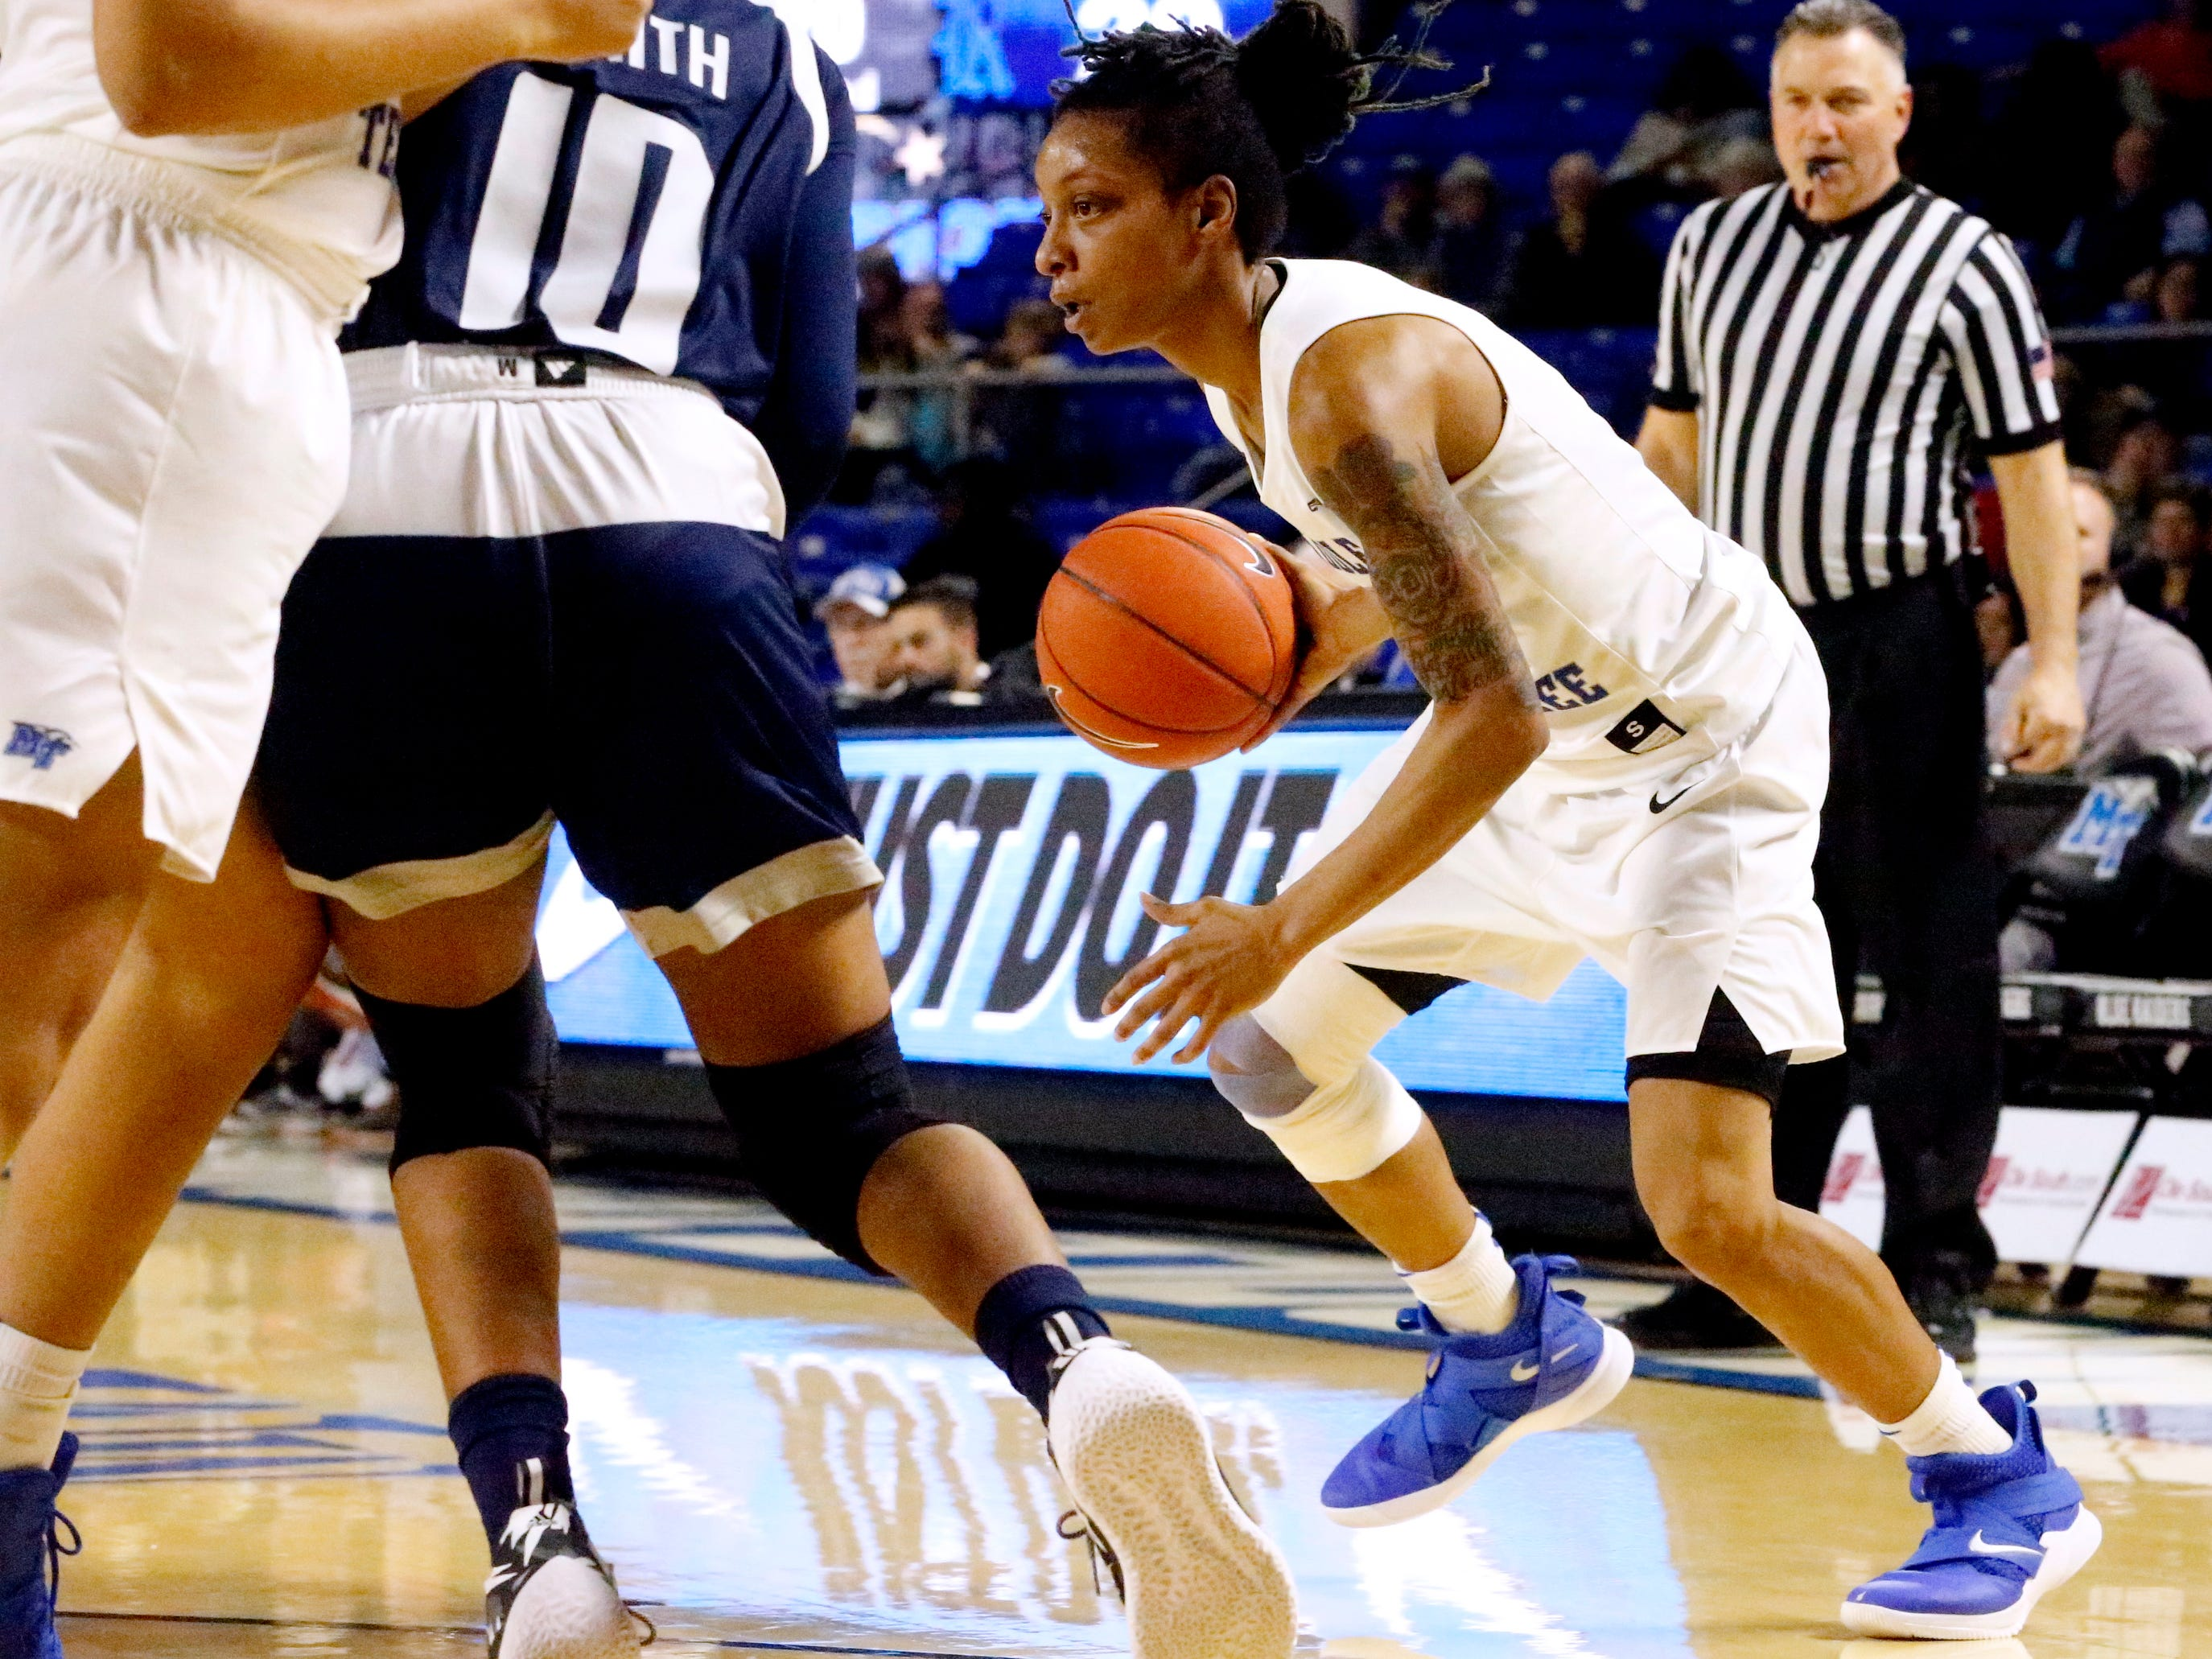 MTSU's guard A'Queen Hayes (1) moves the ball around the cut during the game against Rice on Thursday Jan. 24, 2019.